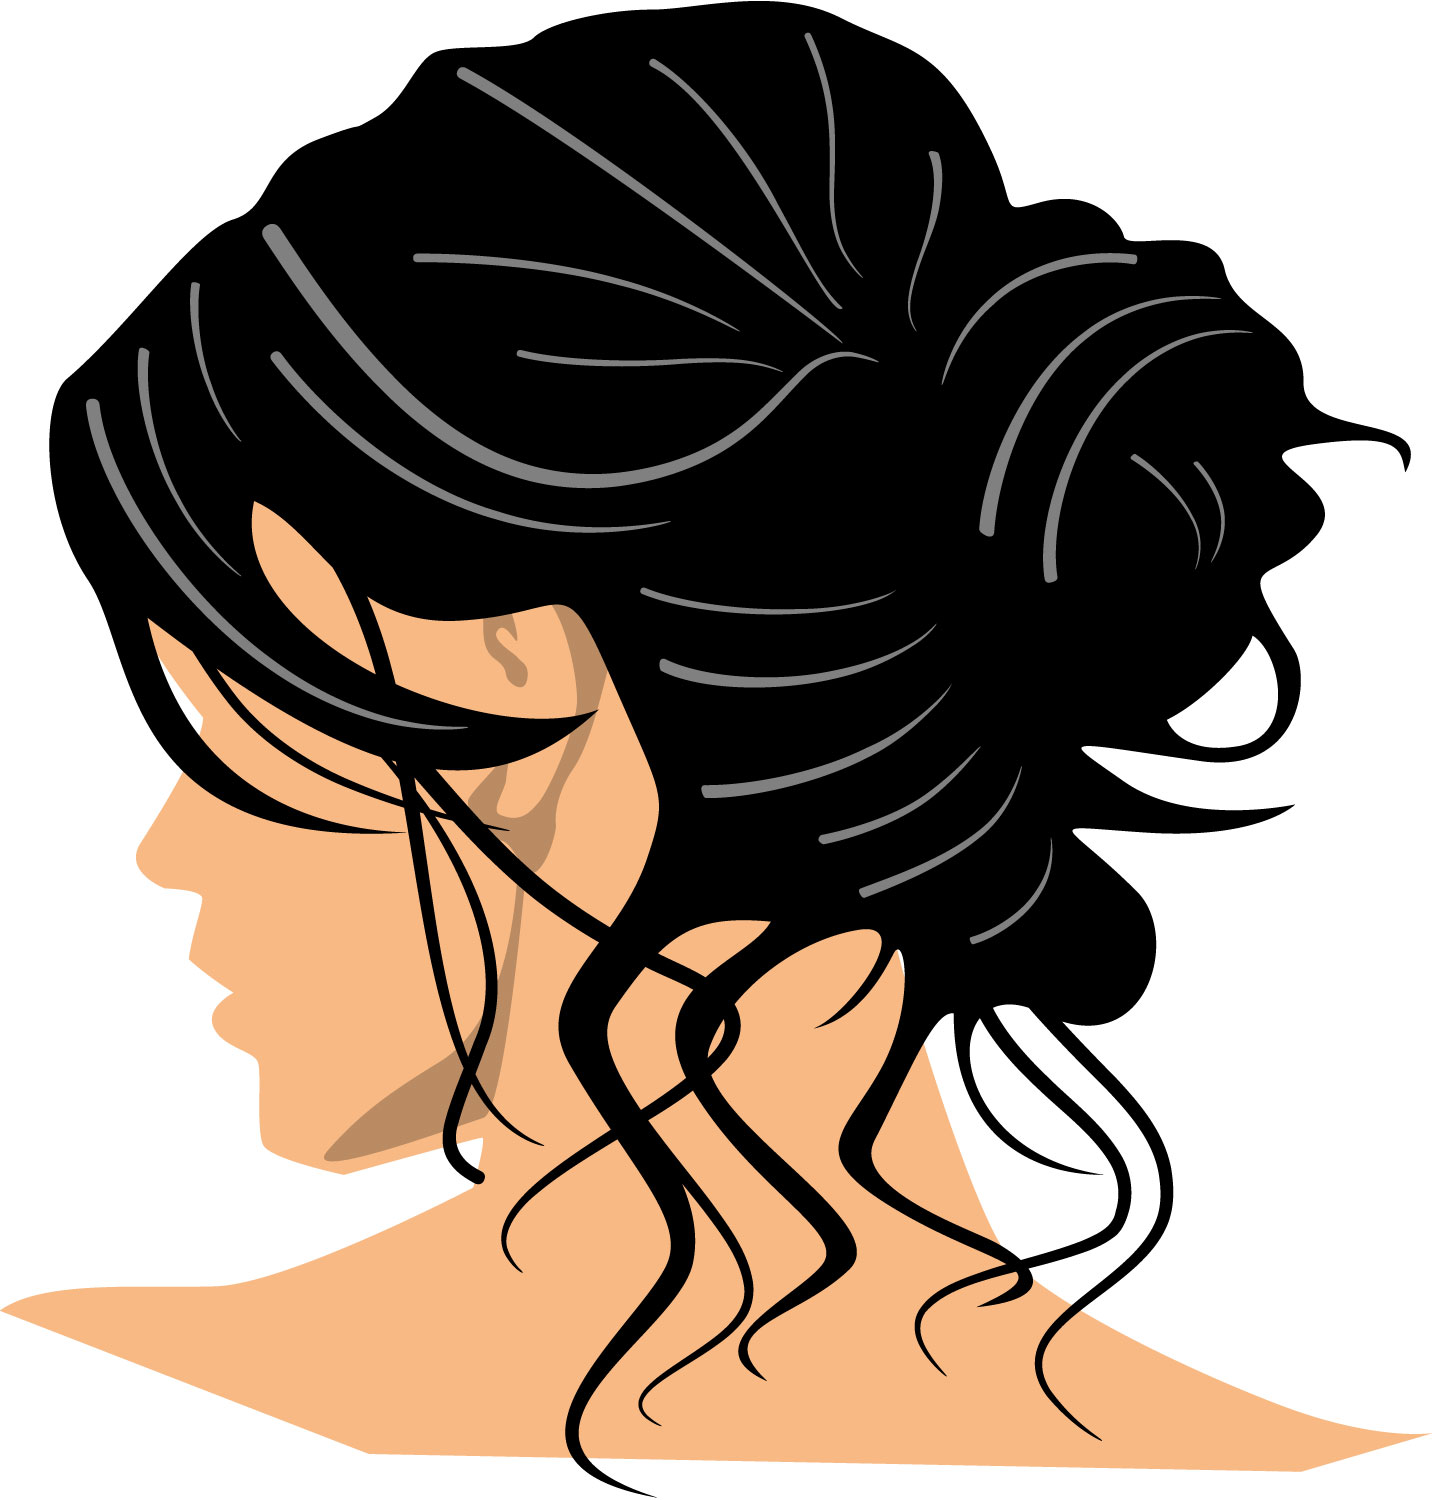 Brush at getdrawings com. Hair clipart image black and white